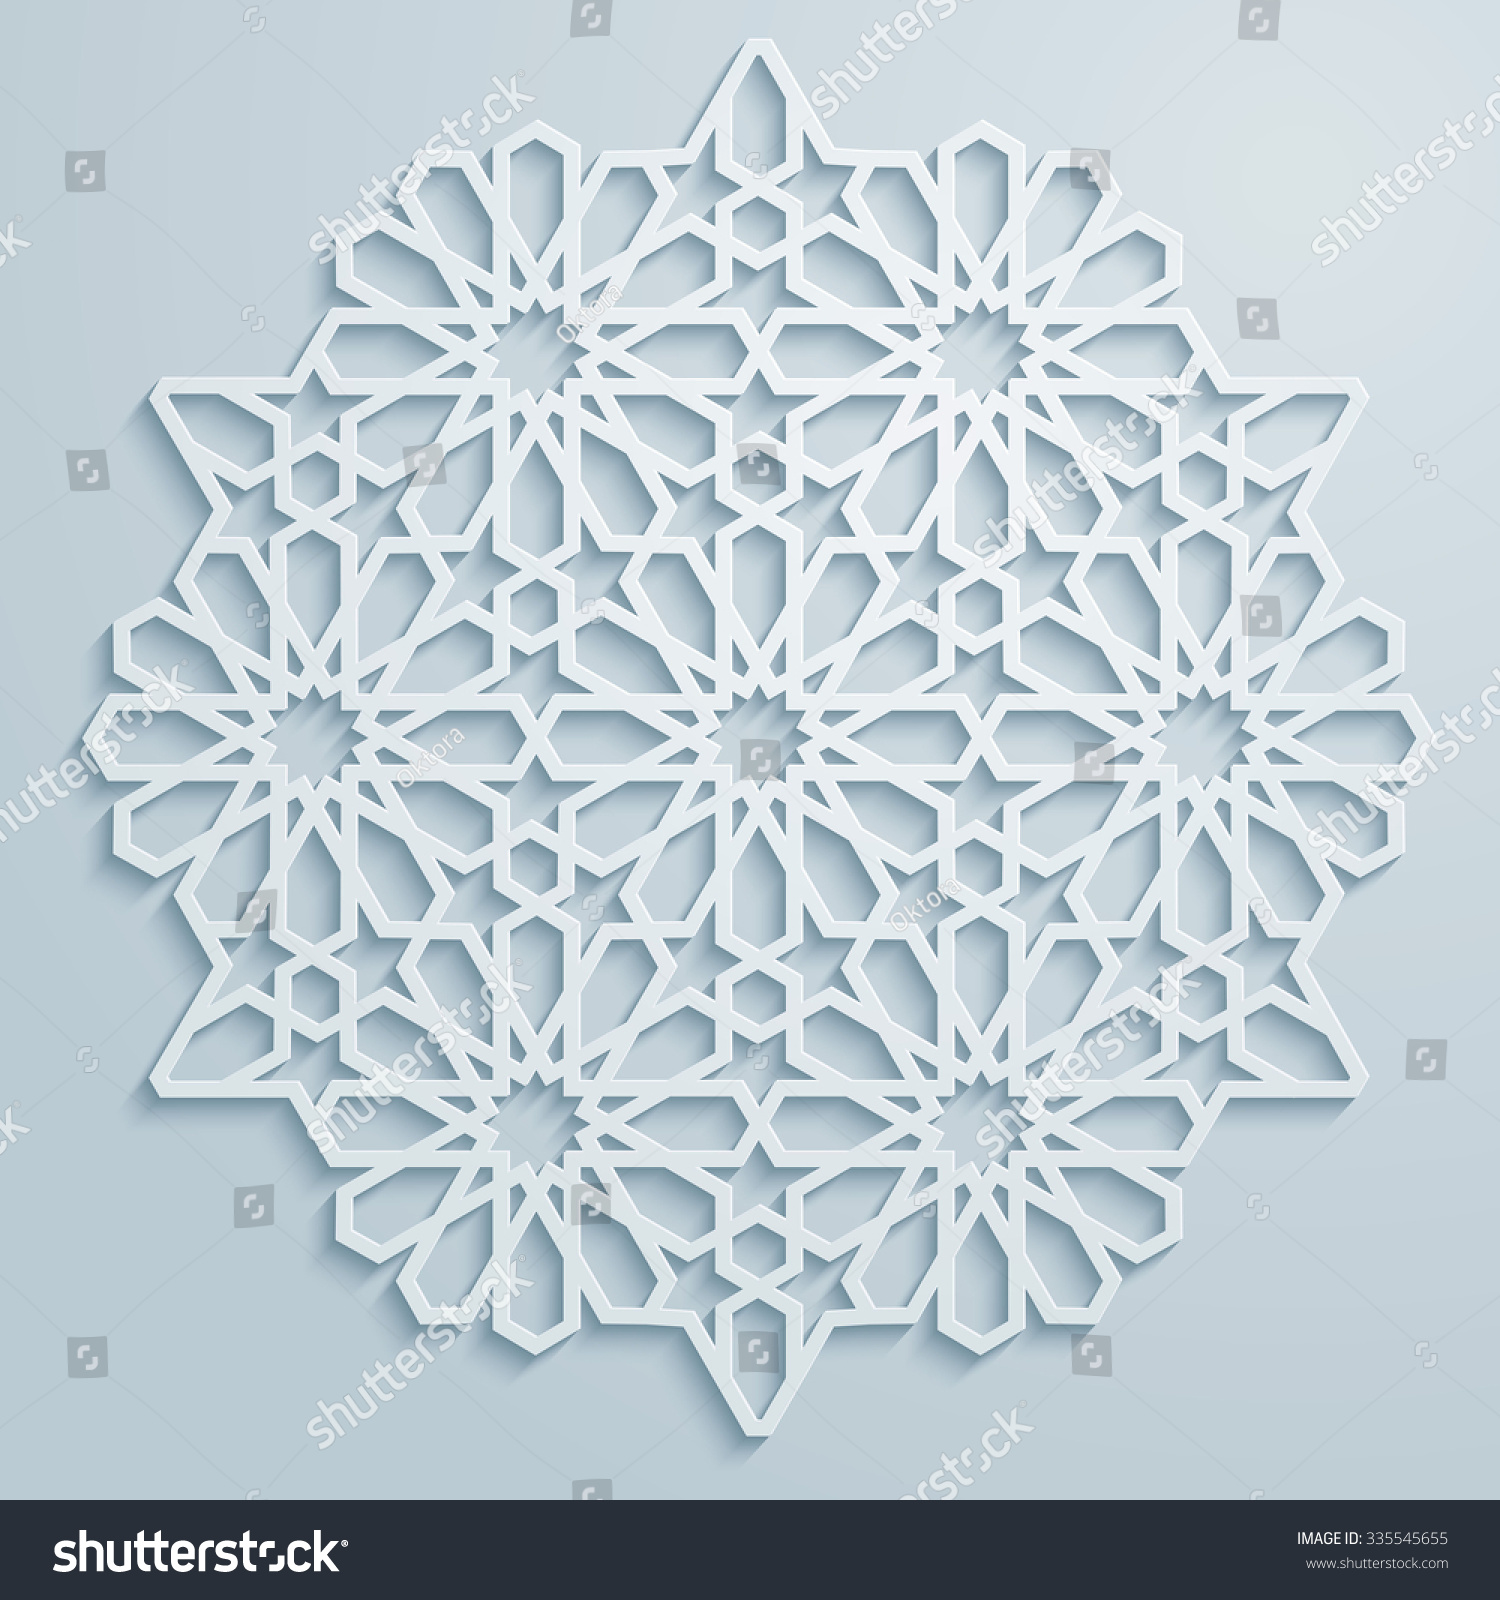 Arabic ornament geometric pattern background